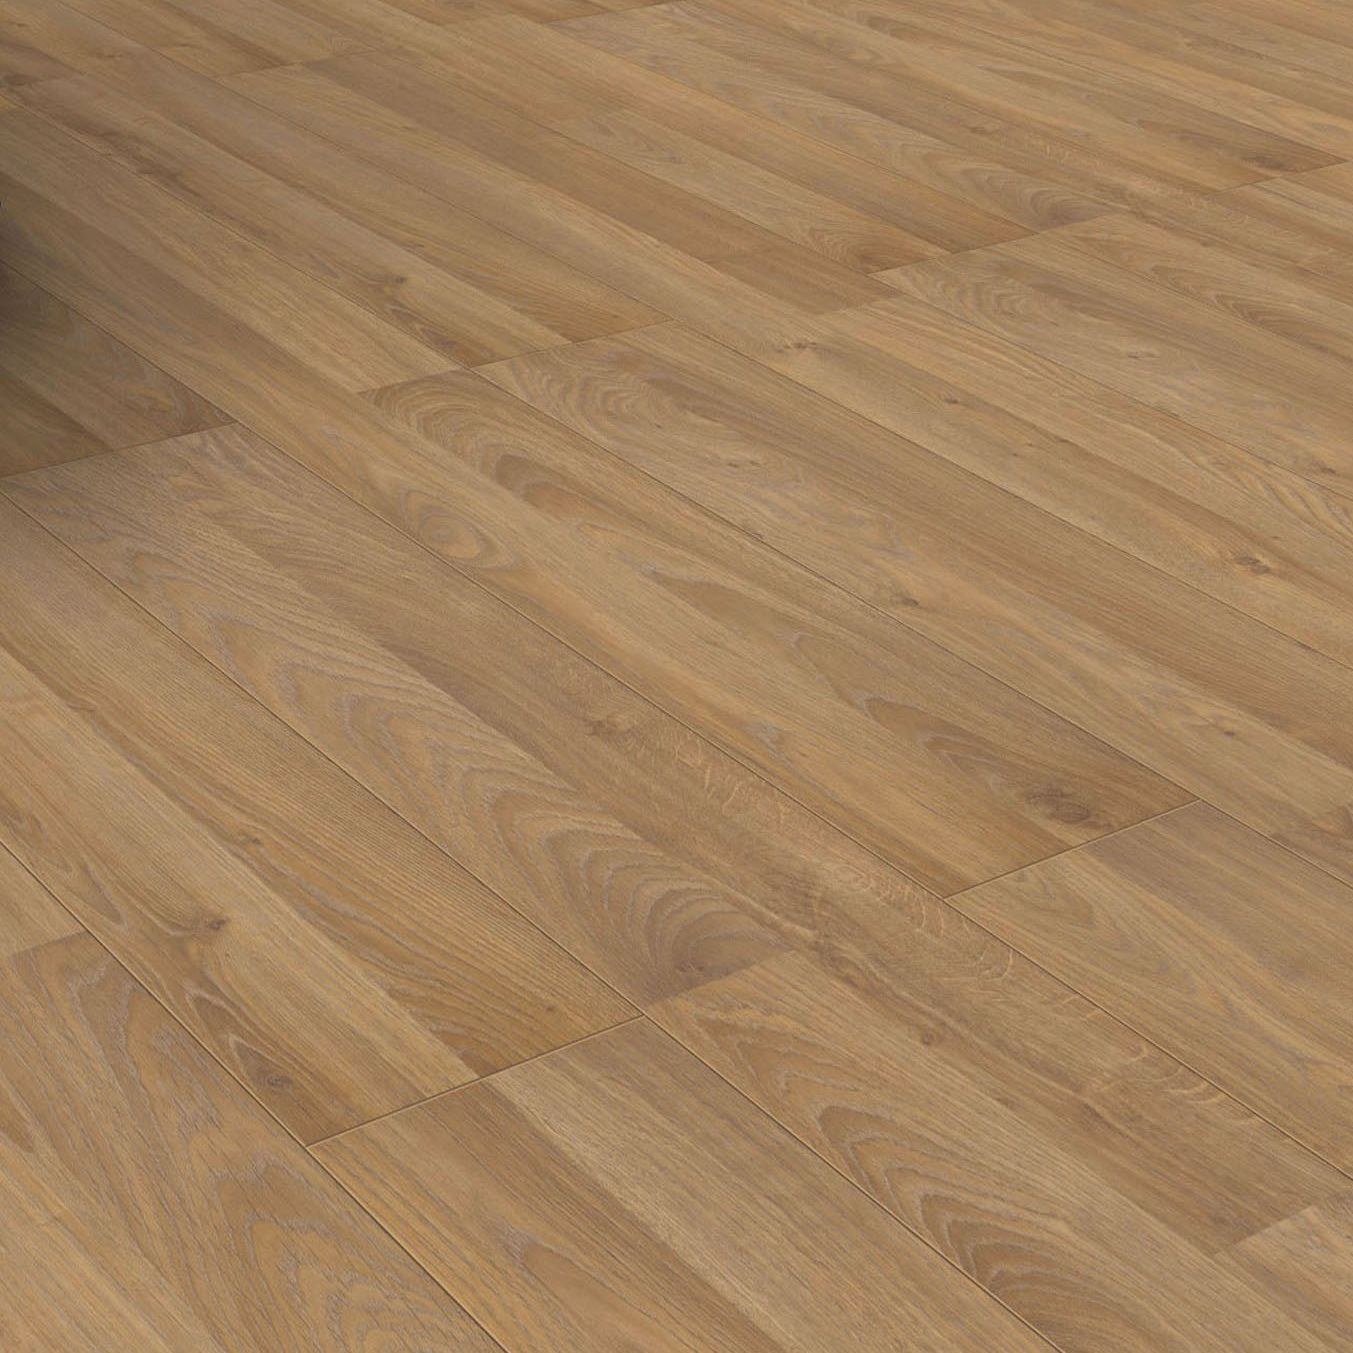 Golden Oak Effect Laminate Flooring 2 M 178 Pack